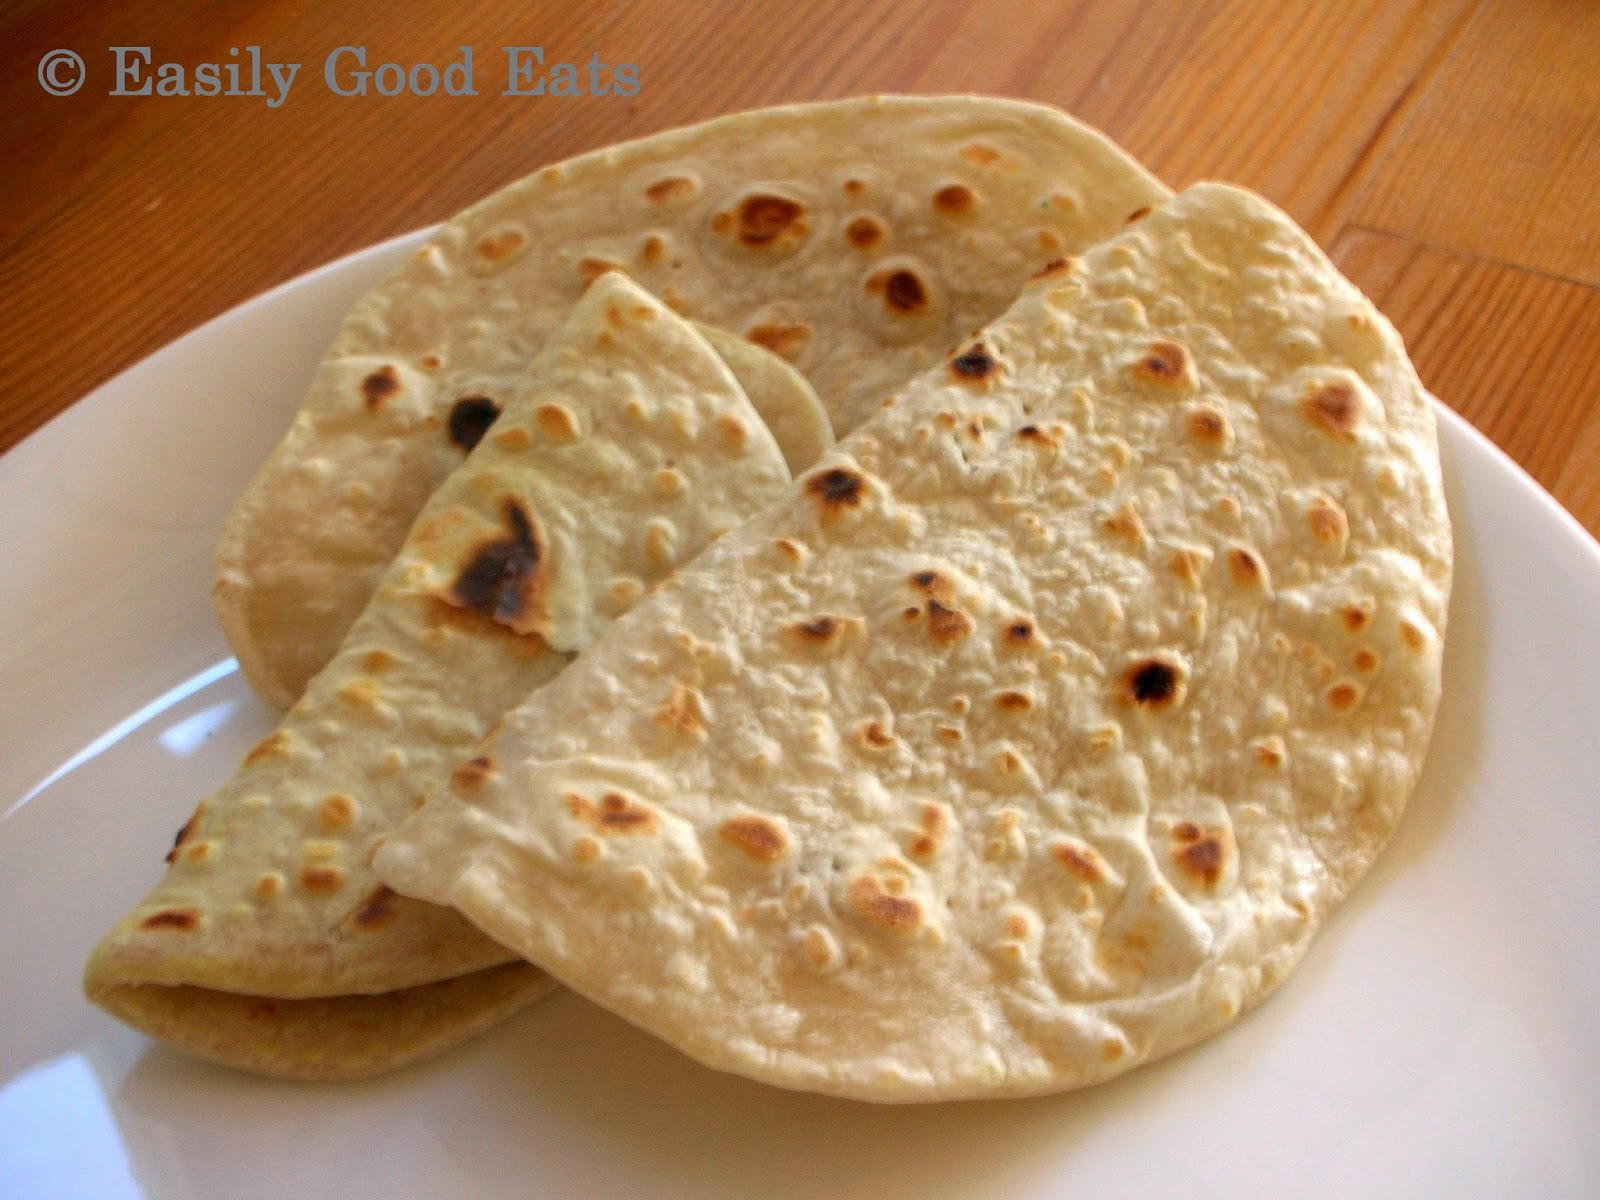 Easily Good Eats: Piadina Recipe